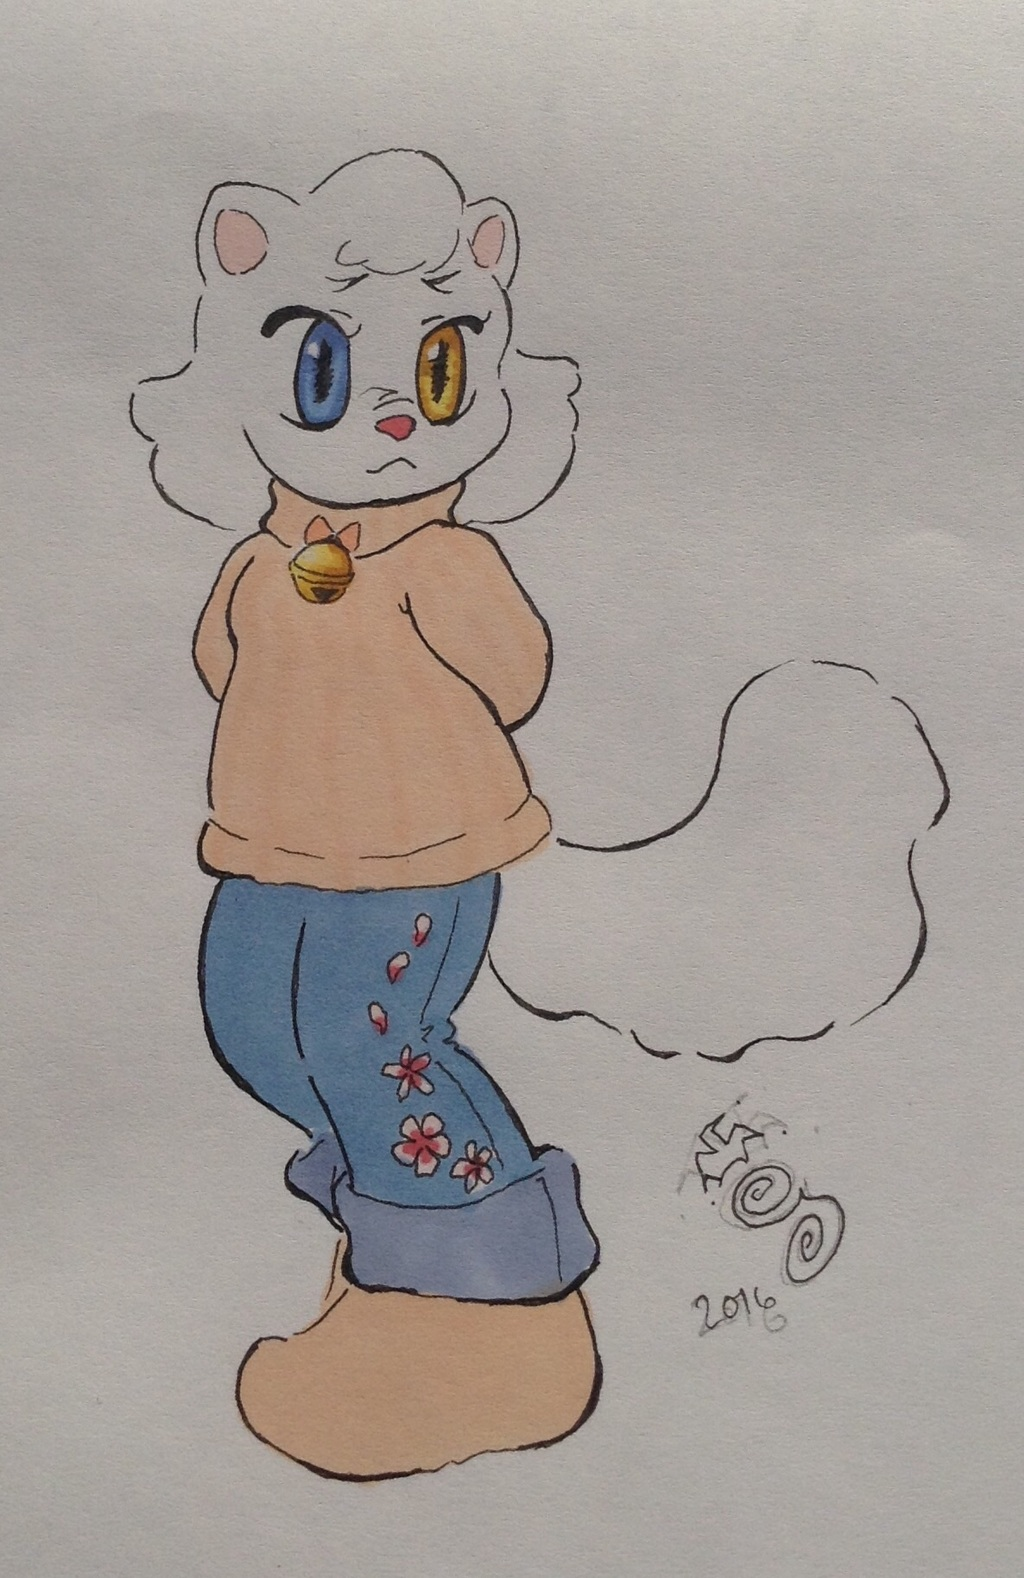 Most recent image: Oddeye kitty needs a name